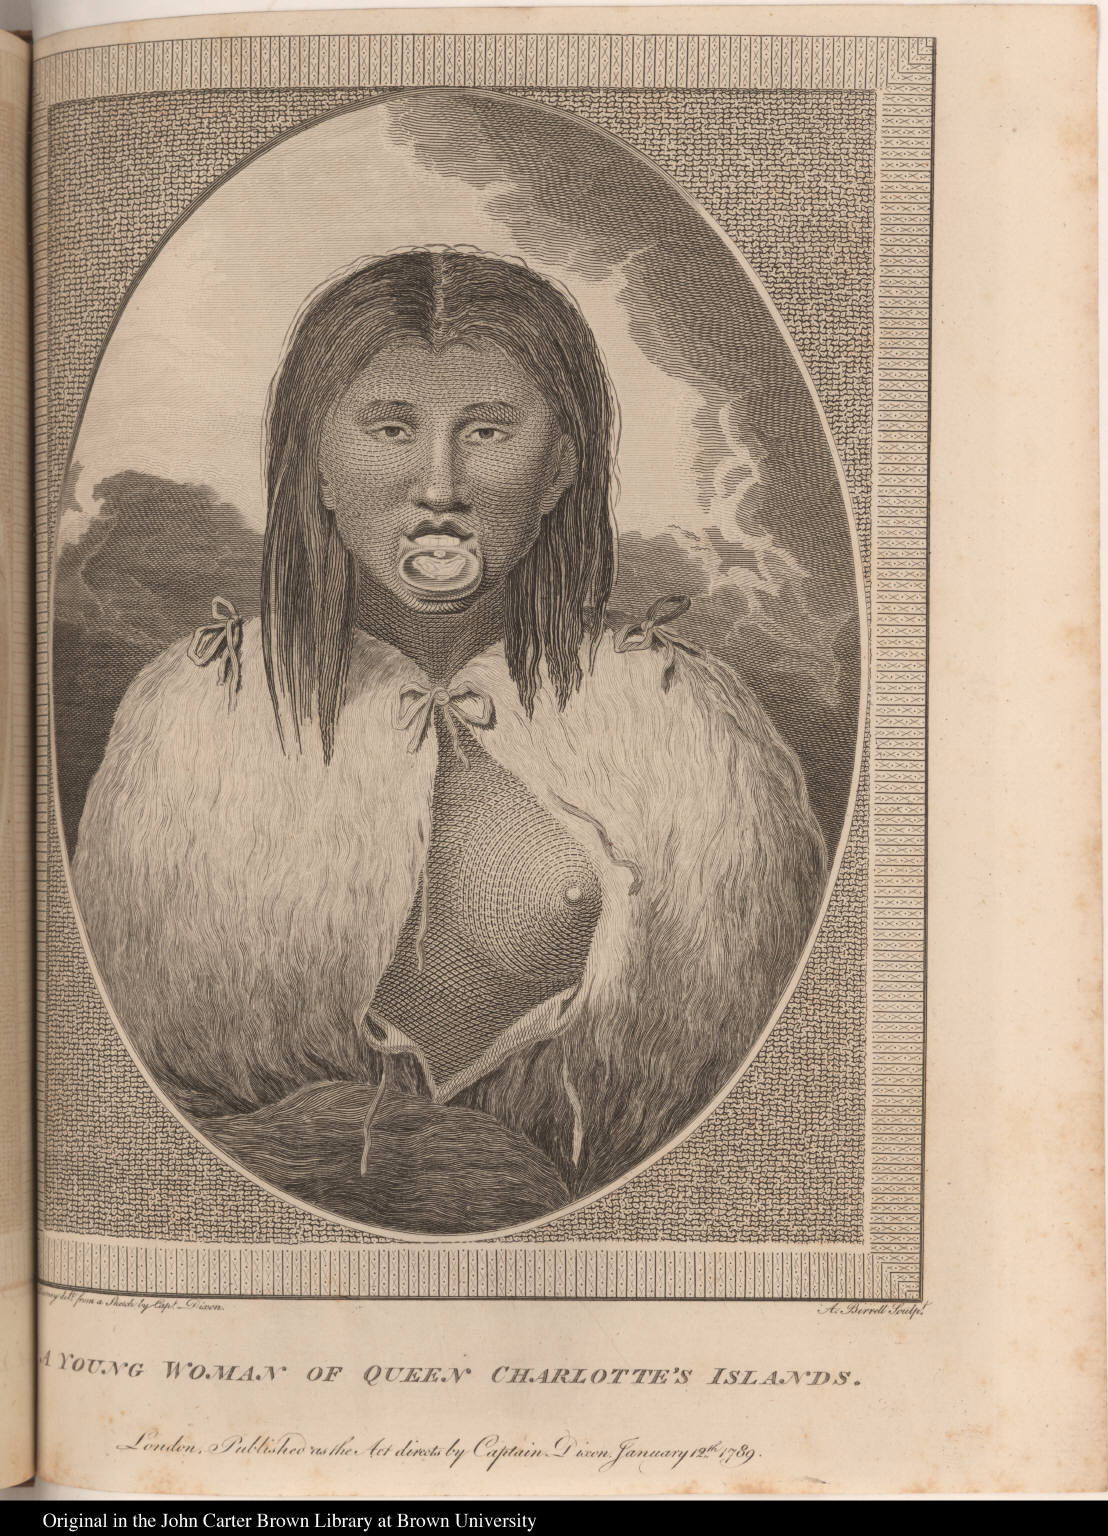 A Young Woman of Queen Charlotte's Islands